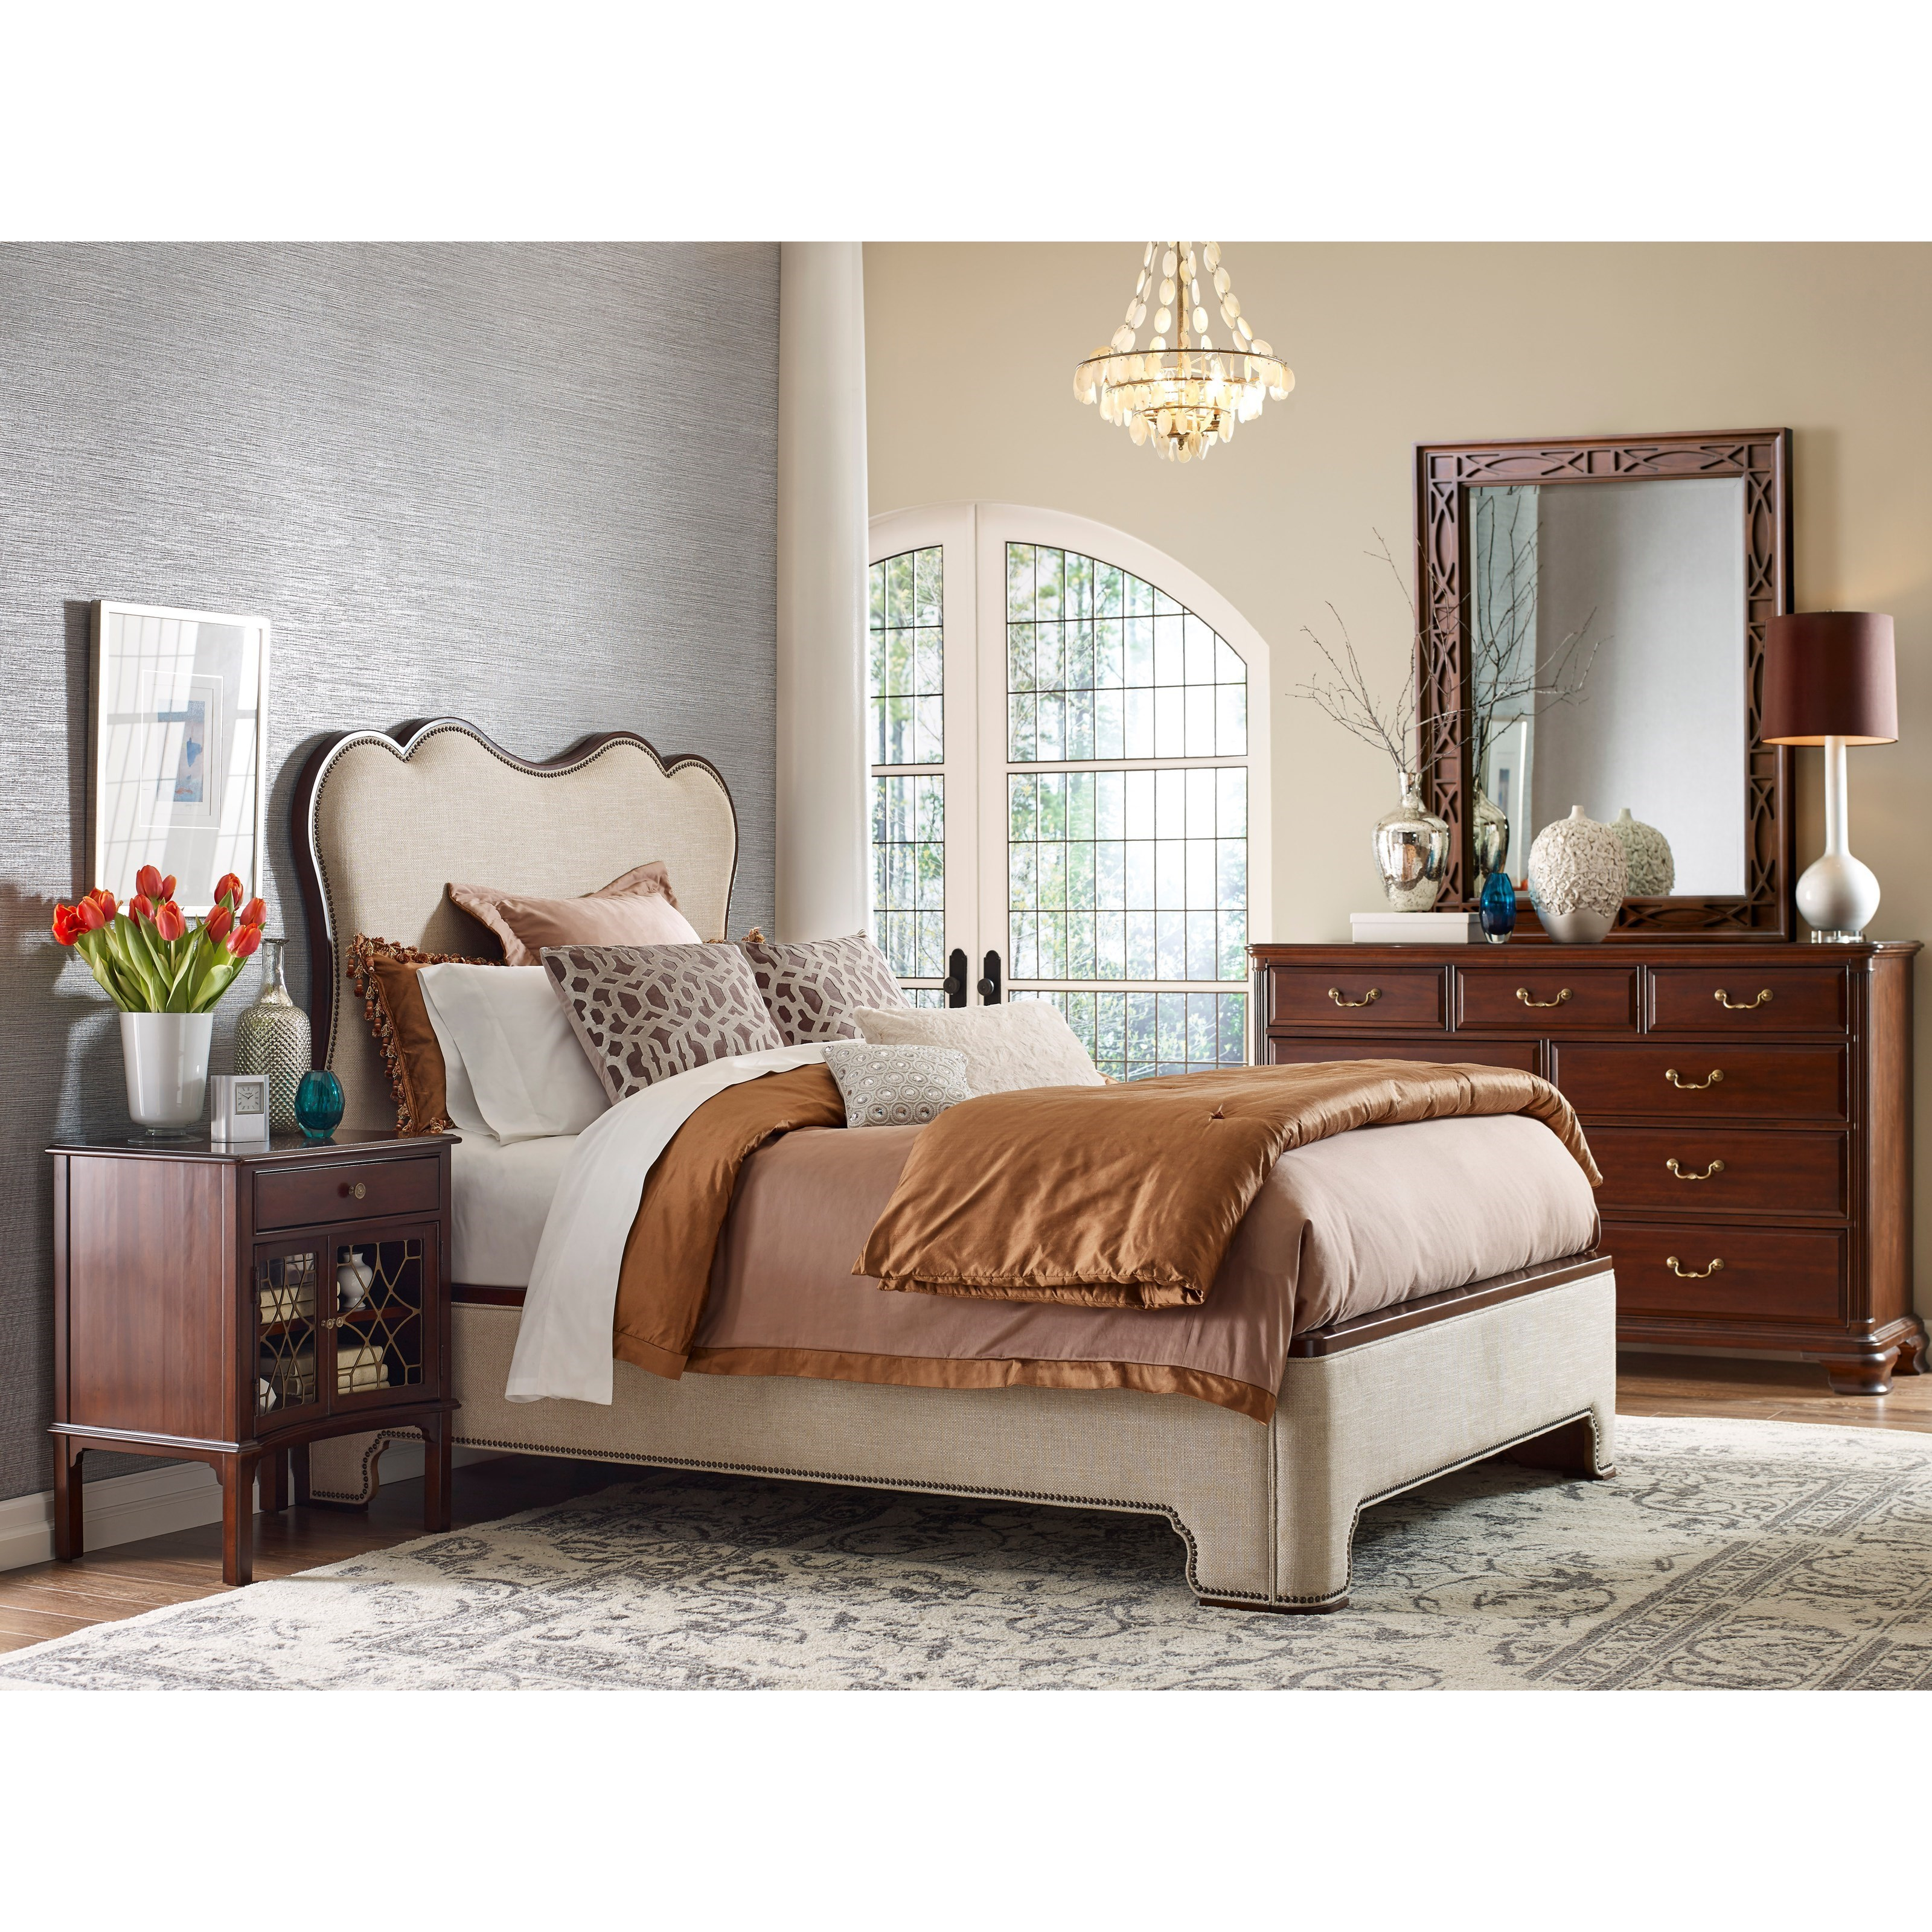 Kincaid Furniture Hadleigh CK Bedroom Group - Item Number: 607 CK Bedroom Group 4